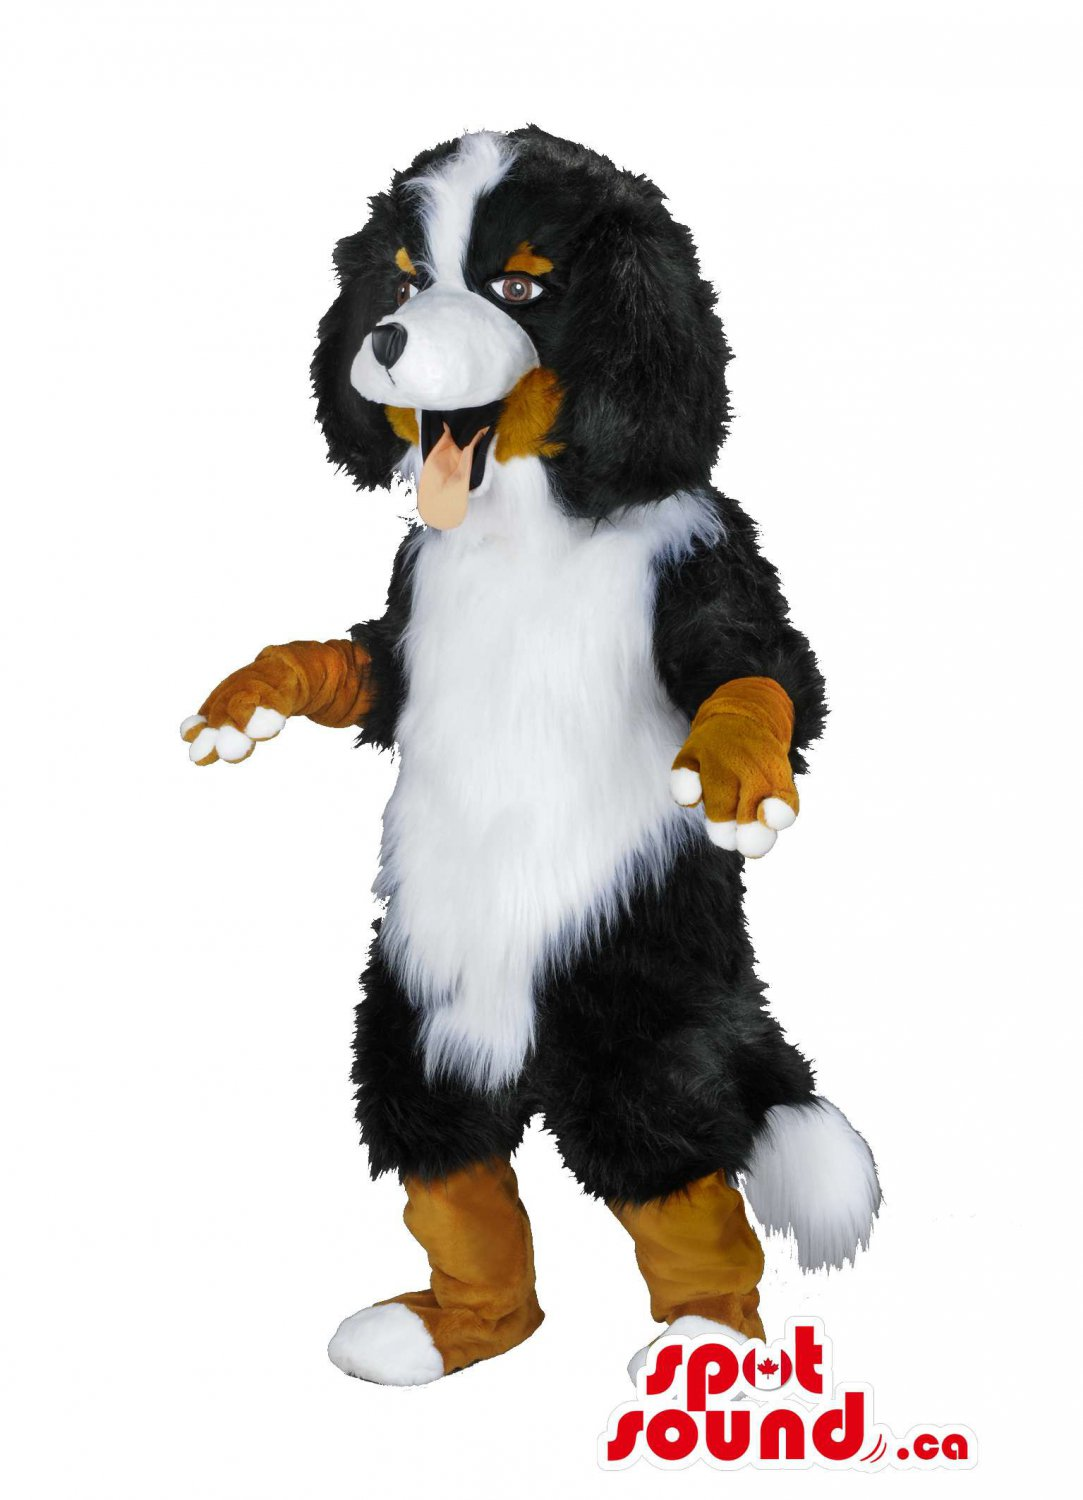 Bernese Mountain Dog Mascot SpotSound Canada With Woolly Brown And Black Fur